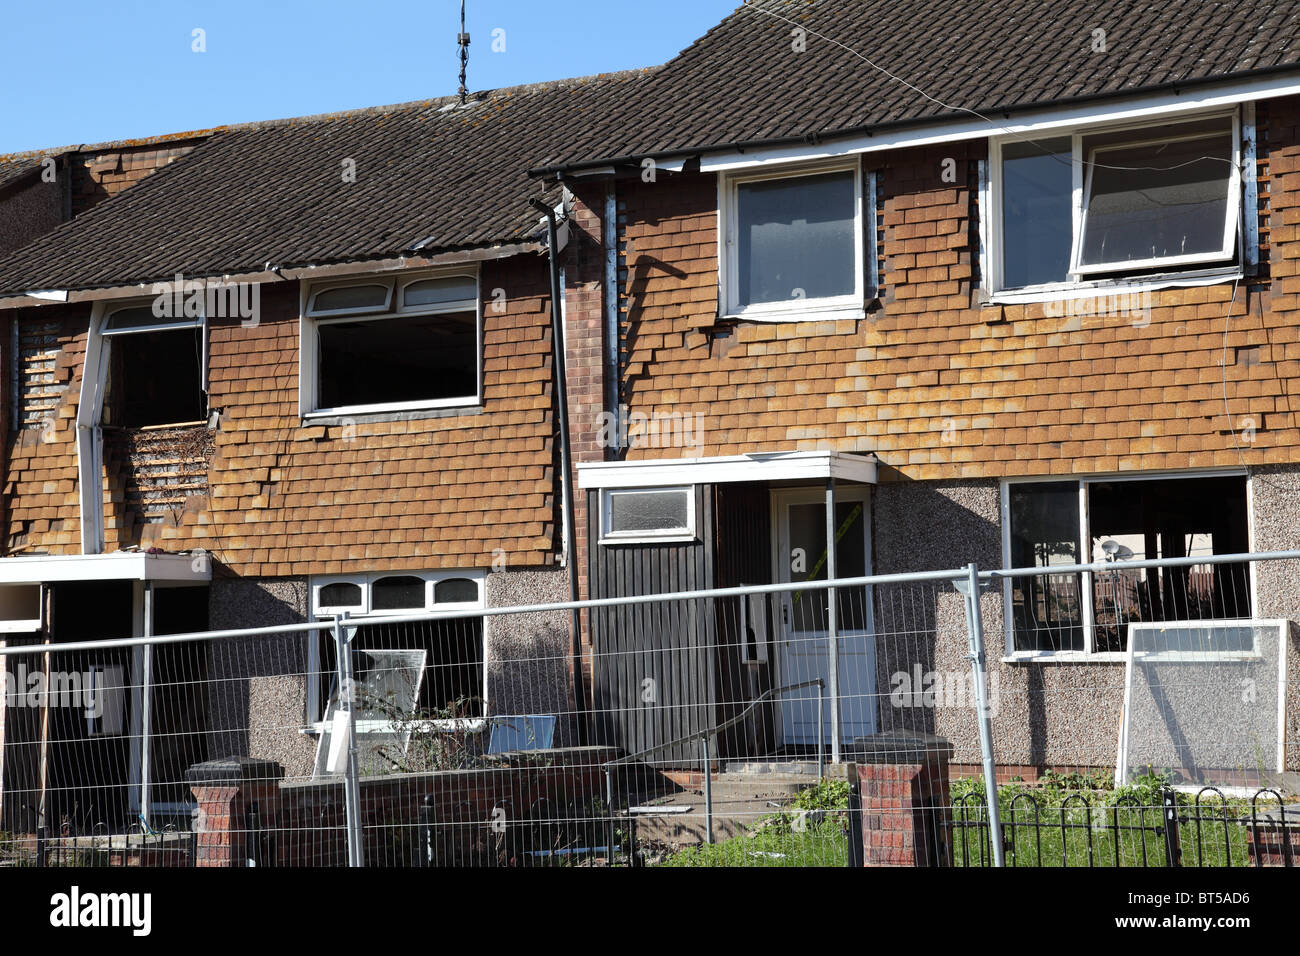 Council houses being demolished in the St Ann's area of Nottingham, England, U.K. - Stock Image